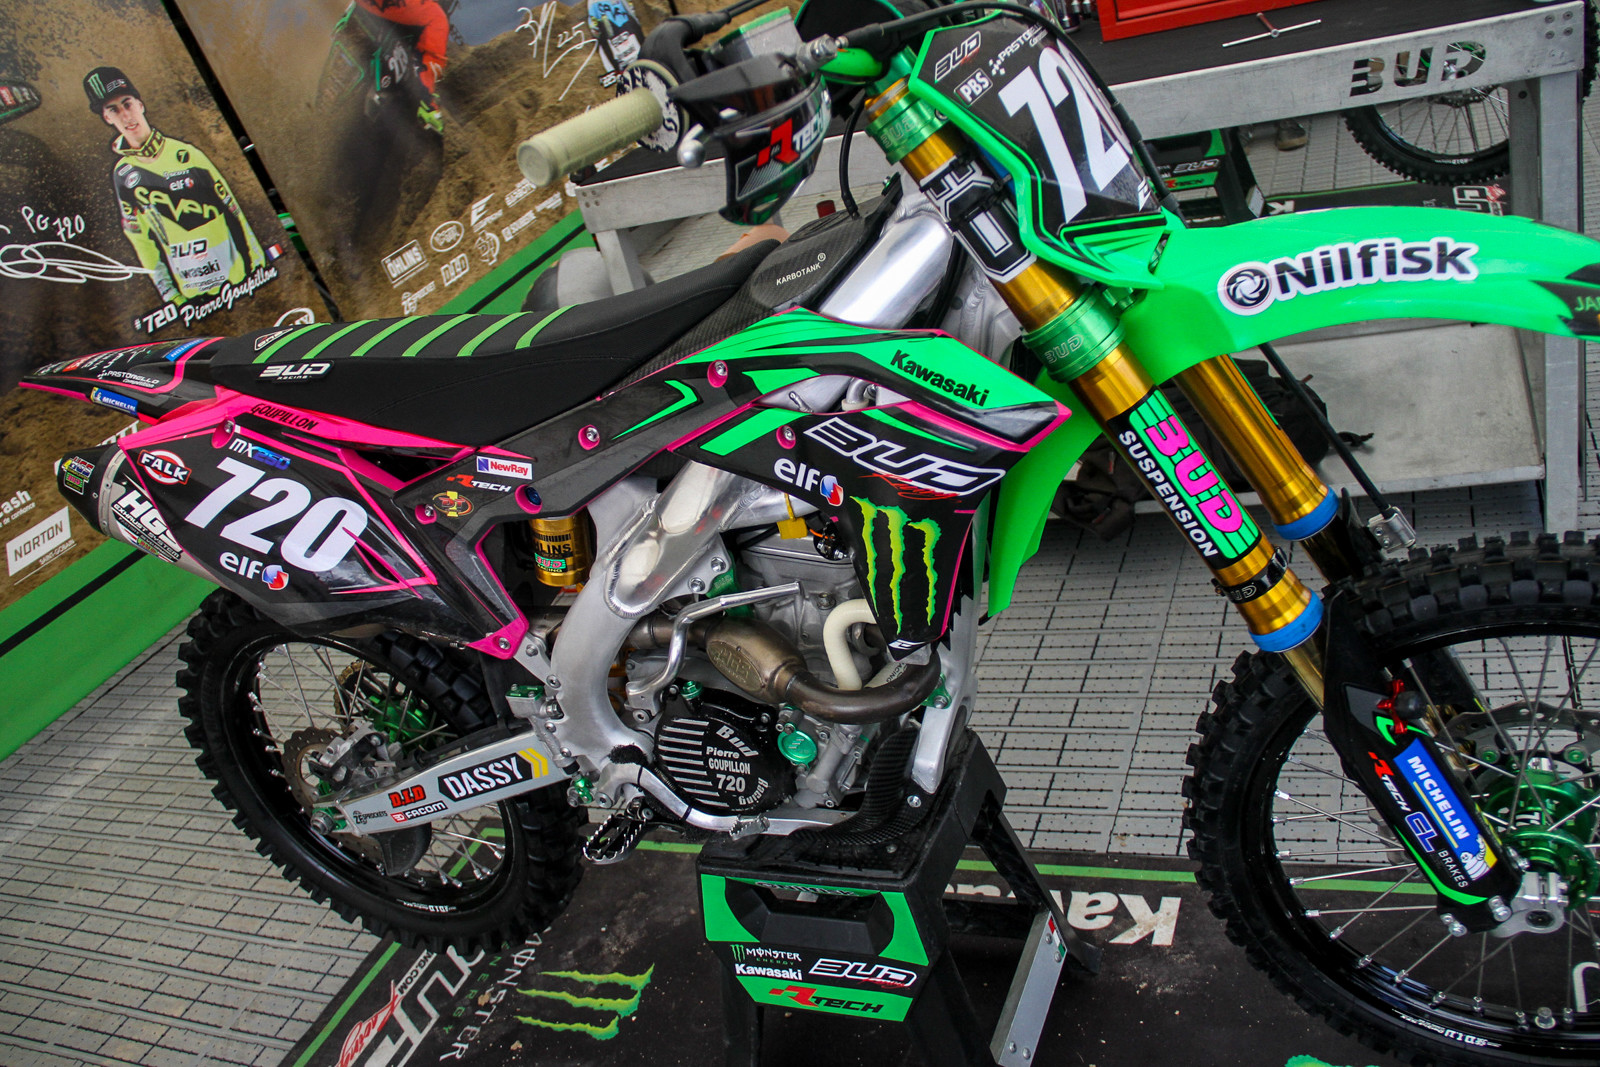 BUD Racing Kawasaki no longer compete in MX2, instead focusing on the Europe leg with the EMX250 class. Per usual, their bikes are covered in house brand parts.